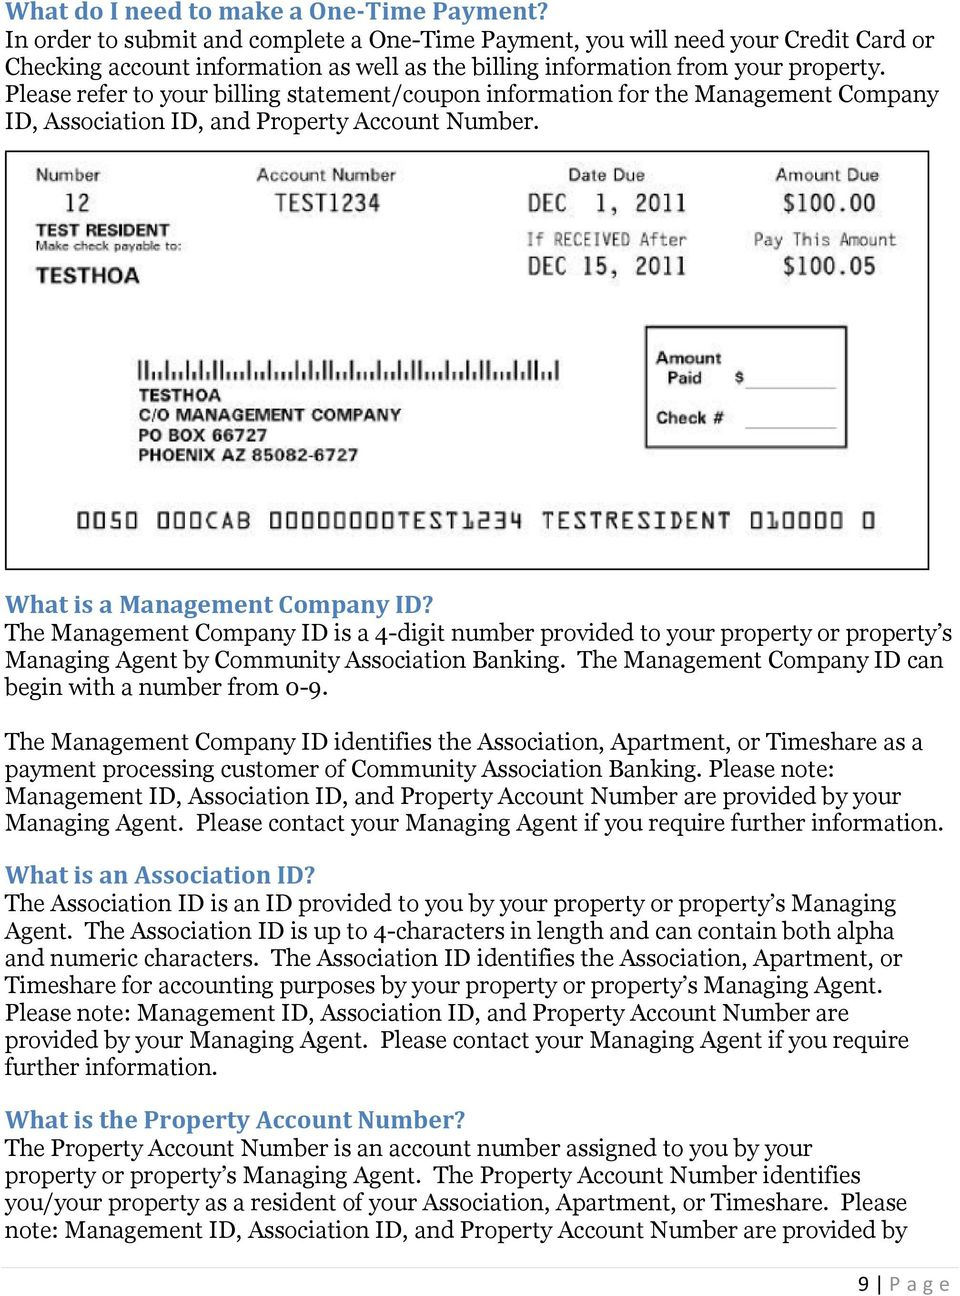 Please refer to your billing statement/coupon information for the Management Company ID, Association ID, and Property Account Number. What is a Management Company ID?